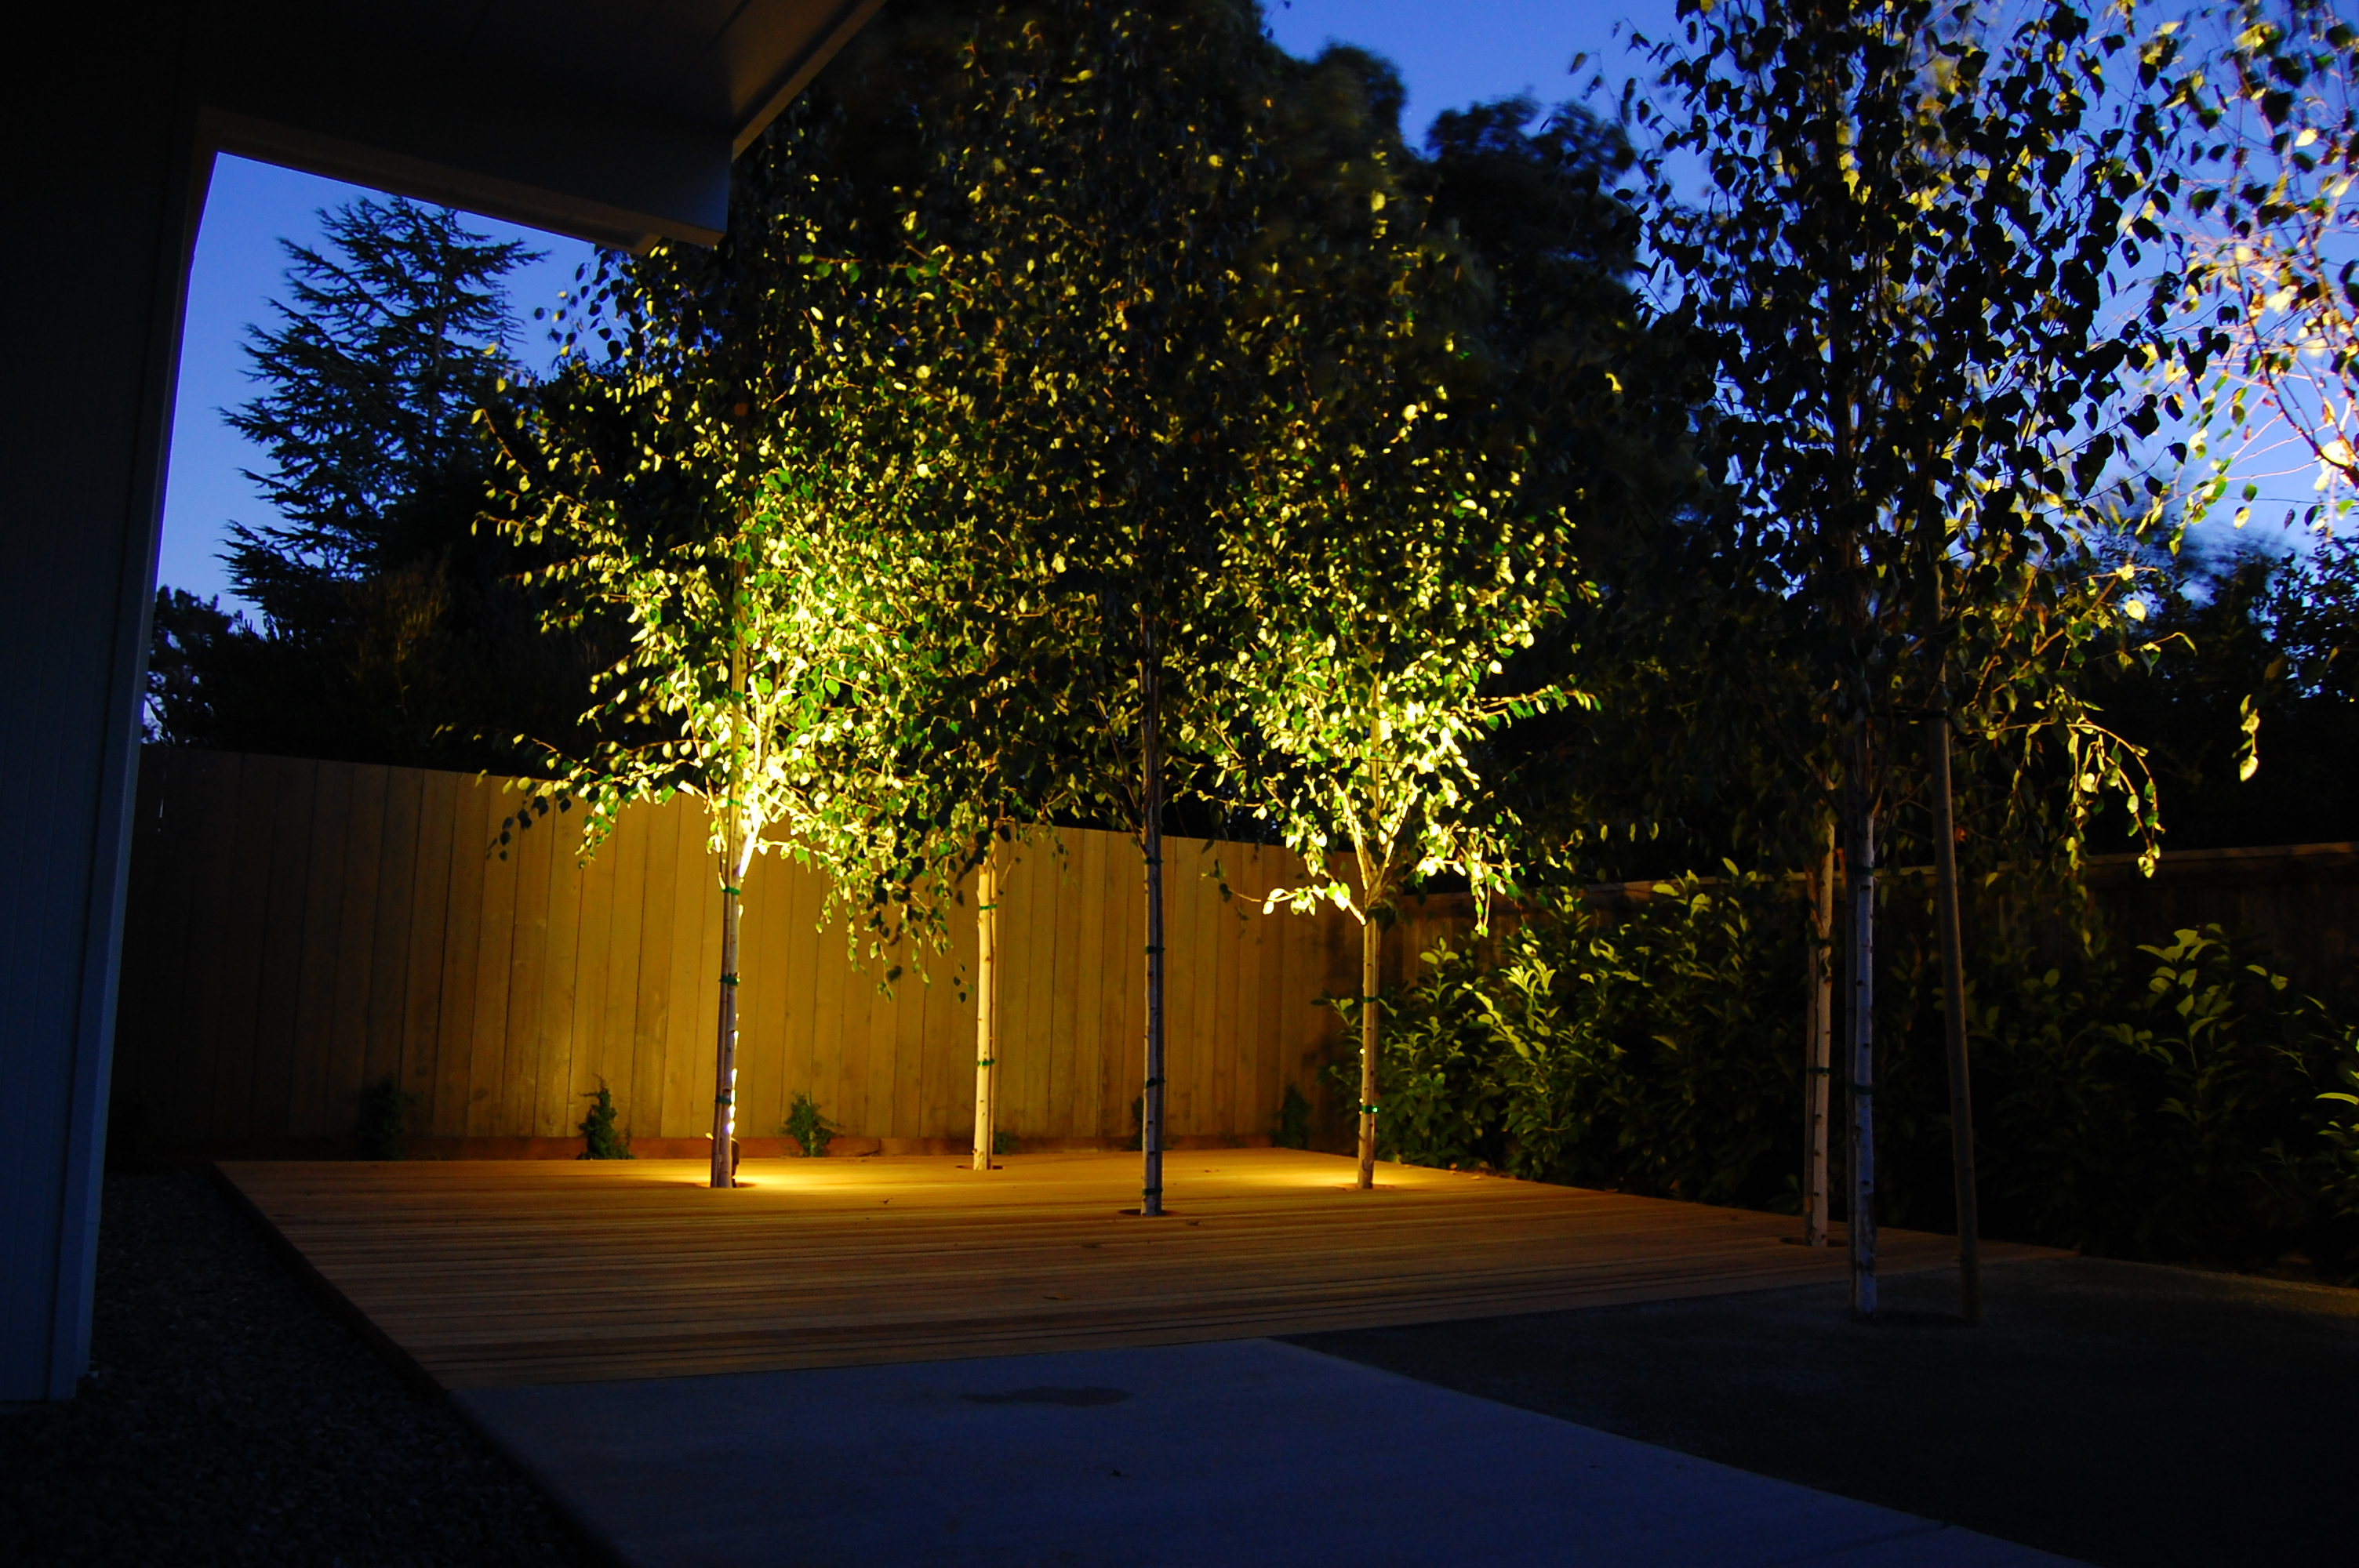 Outdoor lighting landscape lighting room ornament for Outdoor landscape lighting fixtures